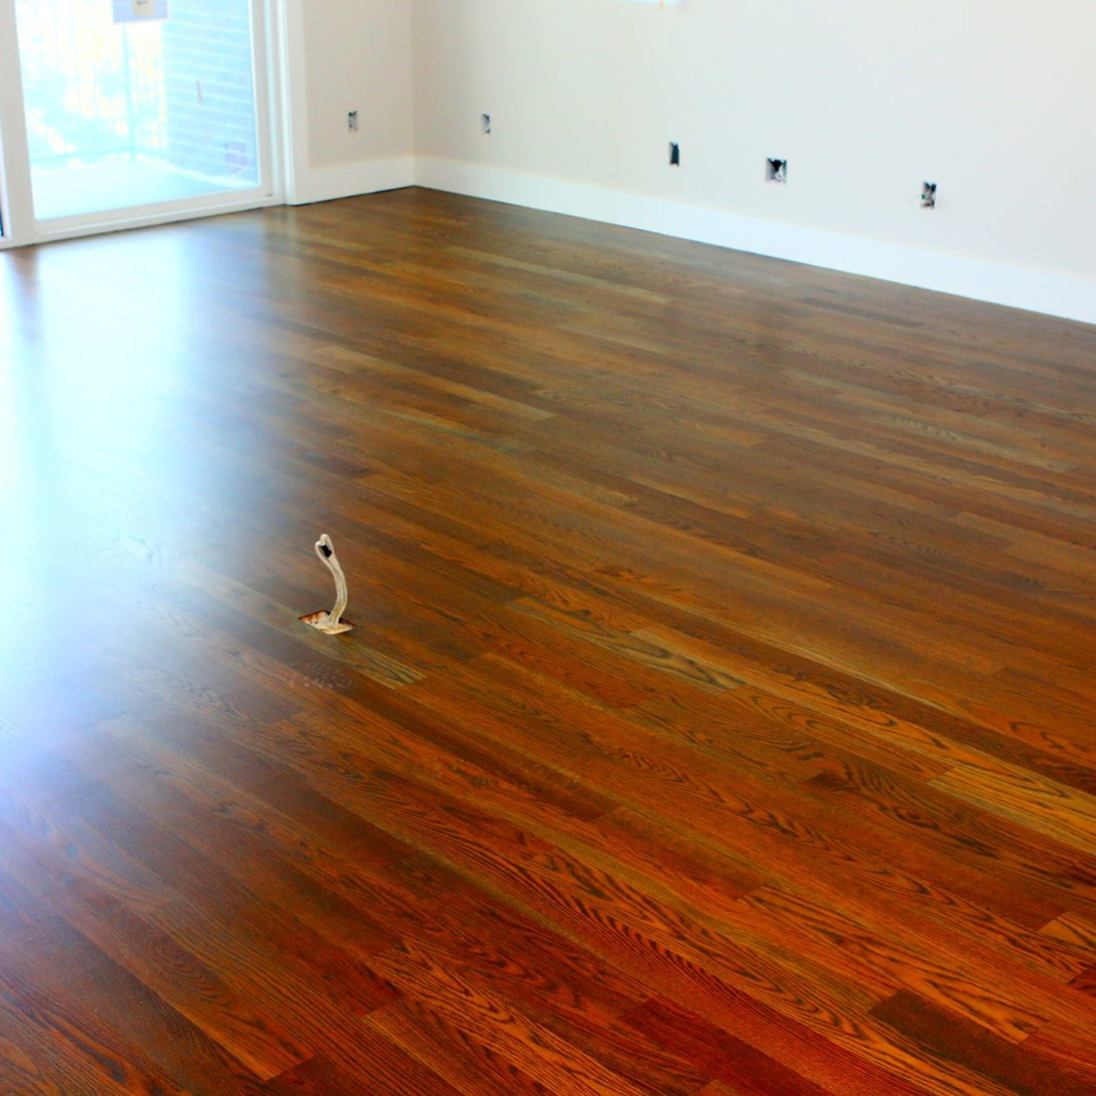 Traverse-City-Hardwood-Floors-White-Oak-Grey-Stain-Randolf-Condo-01